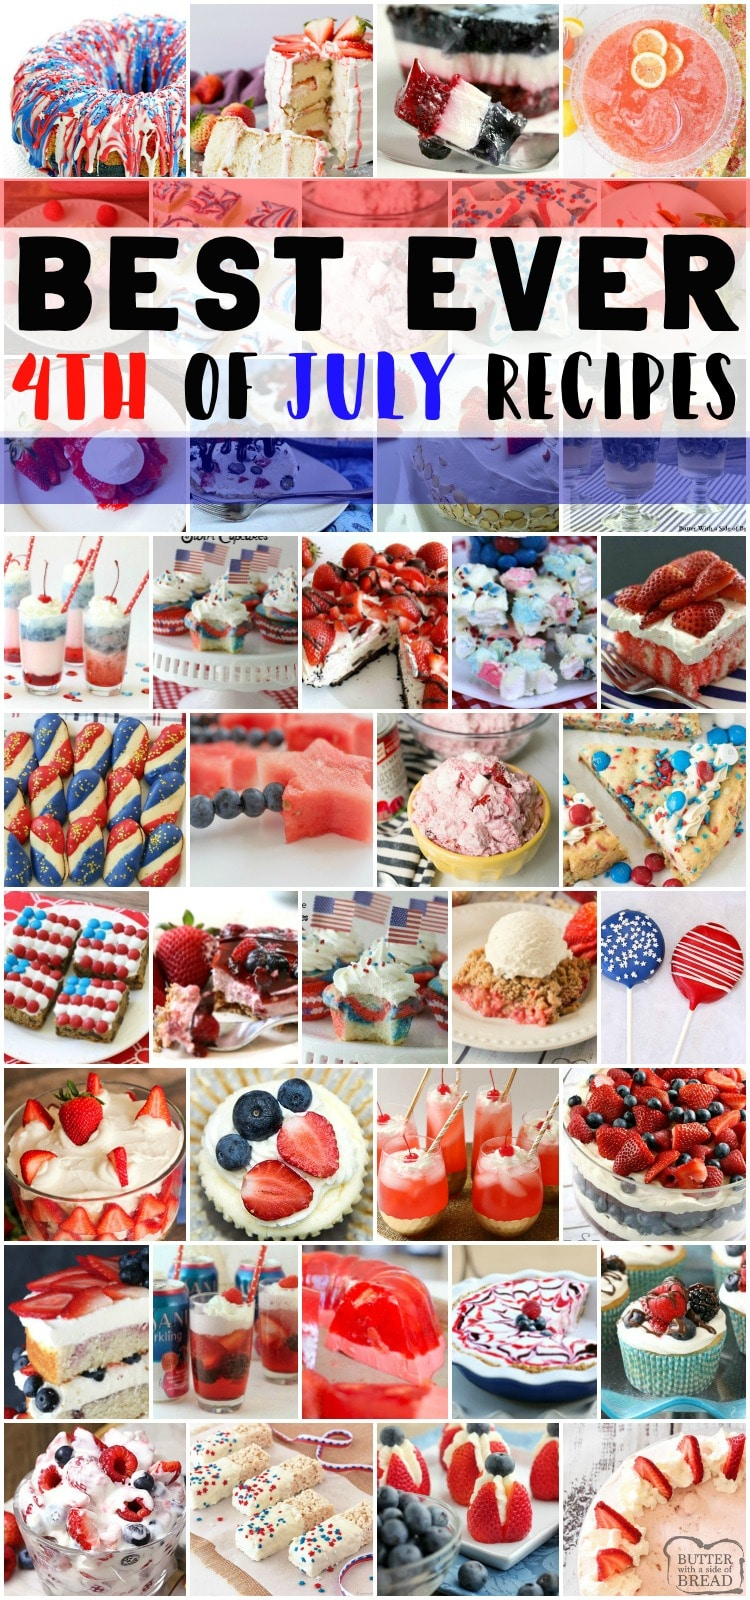 4th of July Dessert recipes that are sweet, festive and perfectly patriotic! Easy red, white & blue recipes that come together fast and everyone loves!